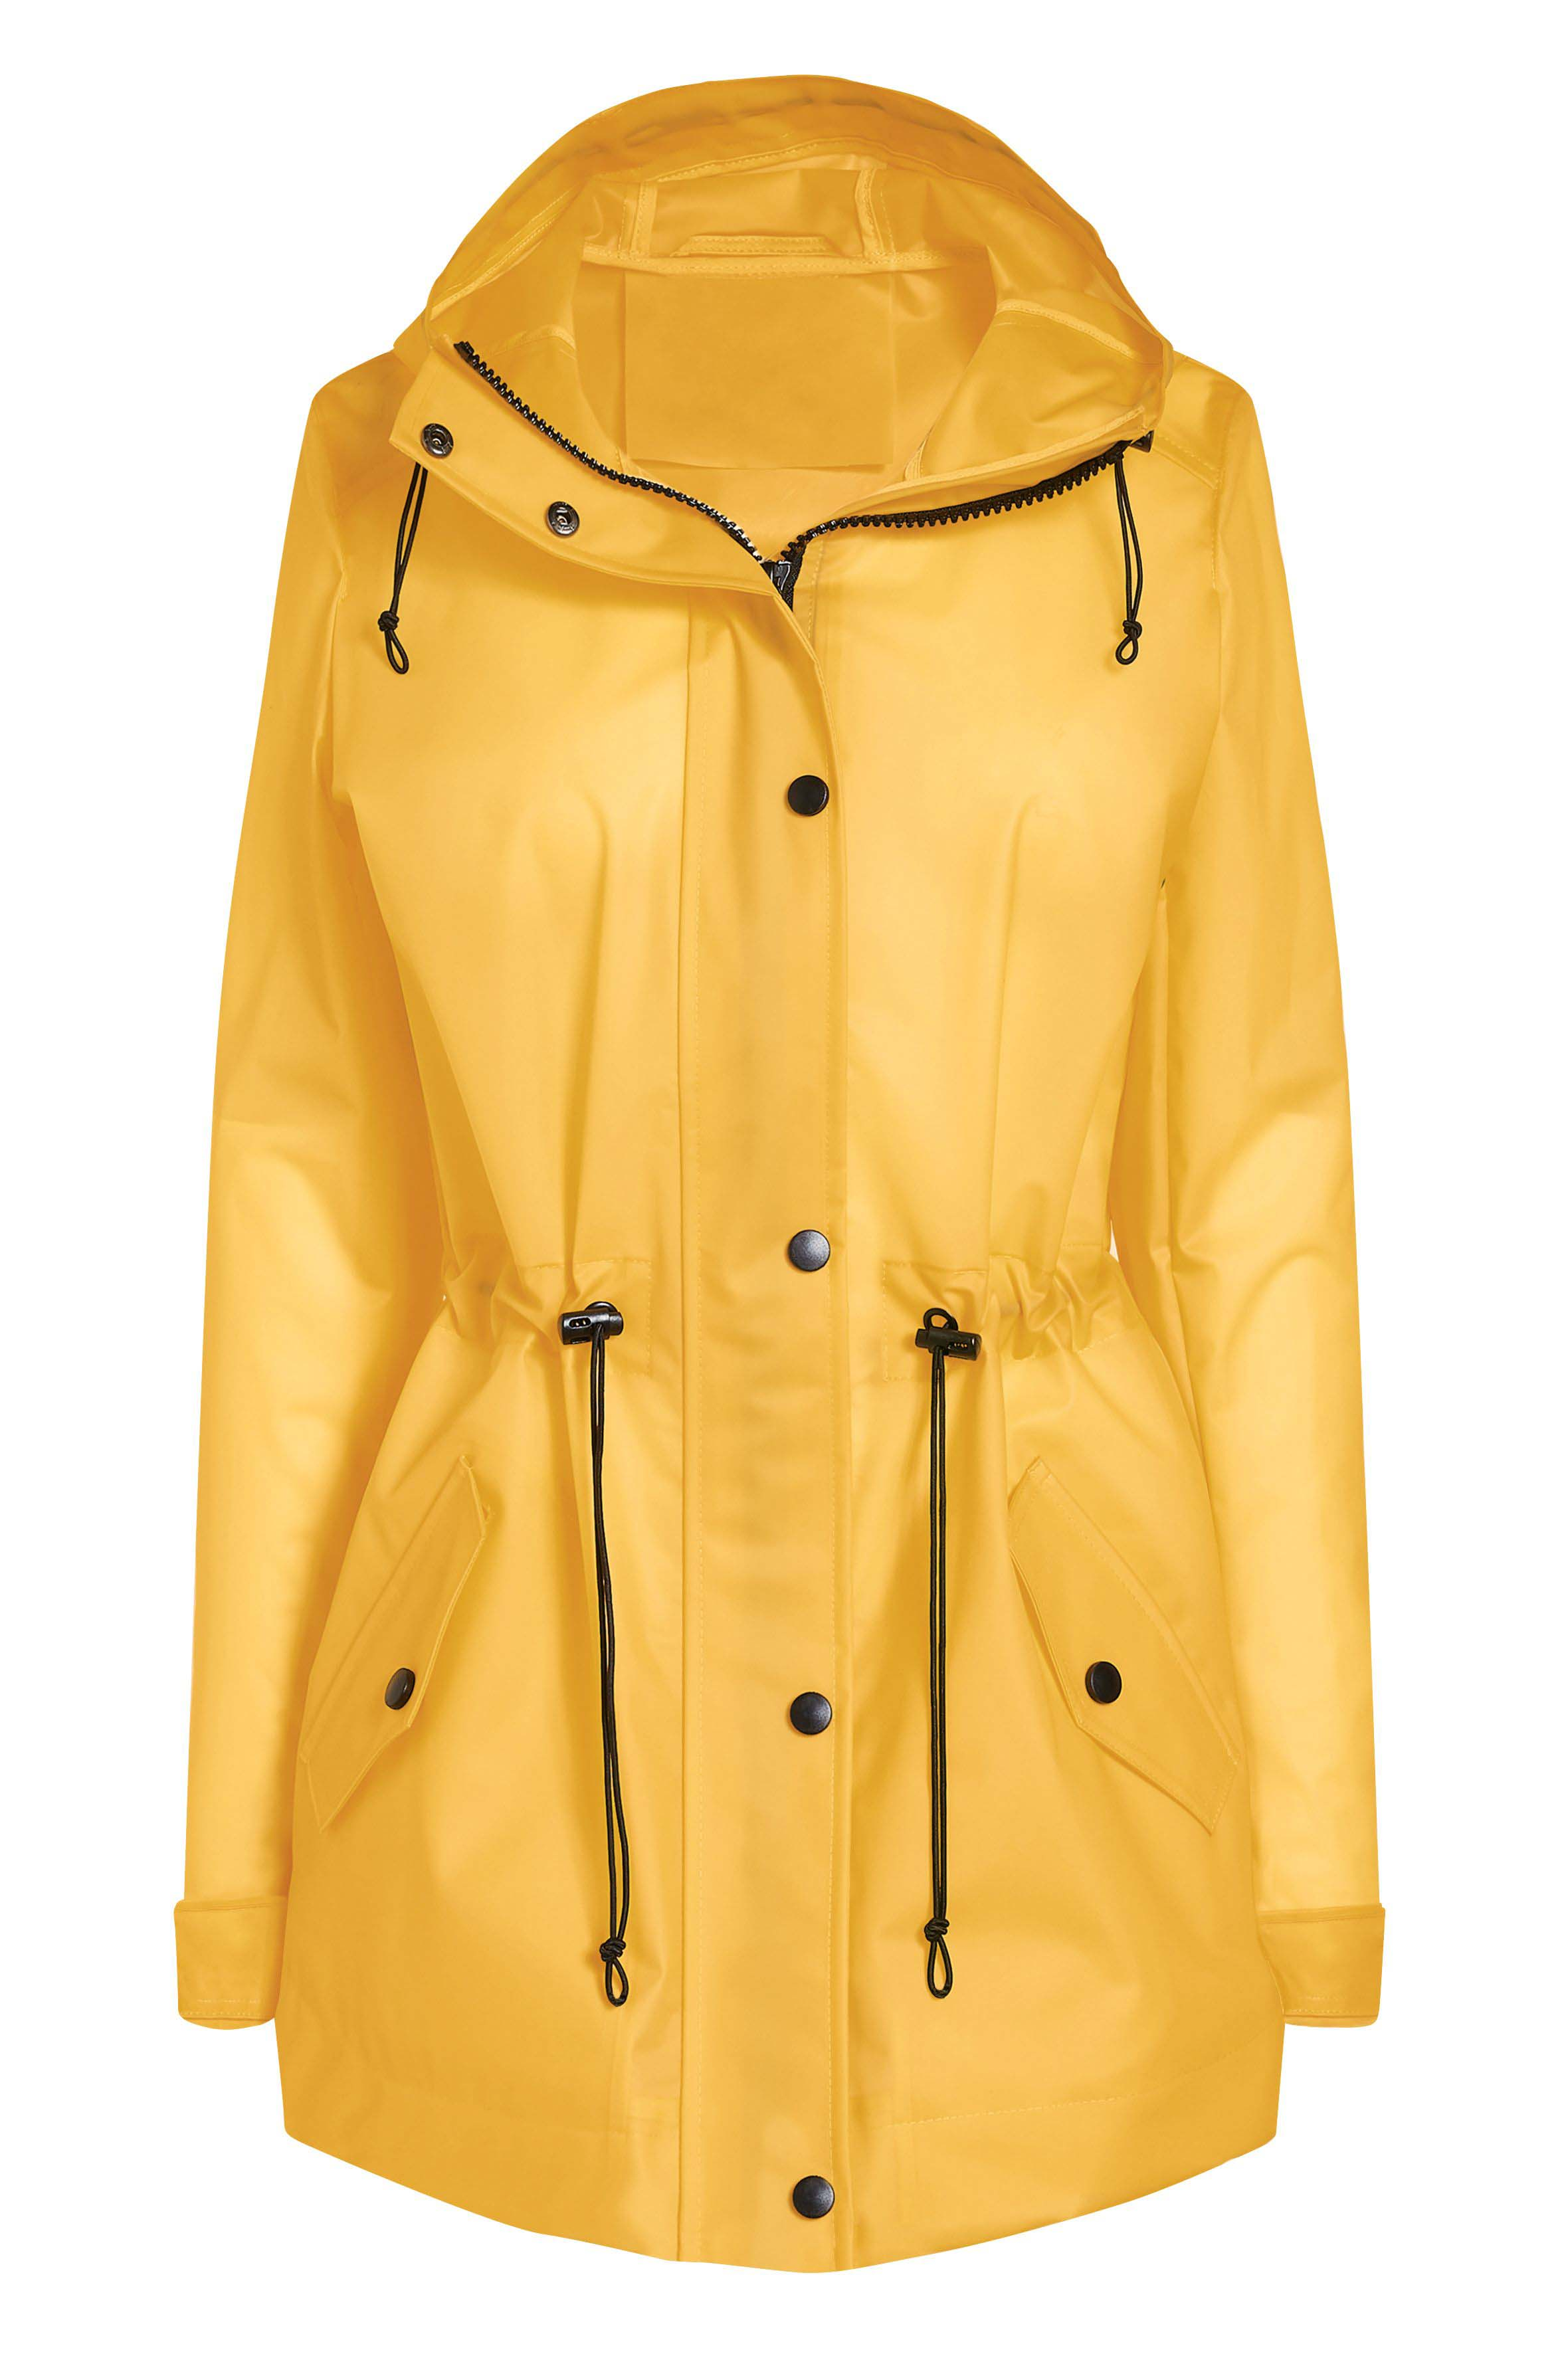 8a664728039 Womens Next Yellow Translucent Rubber Effect Jacket - Yellow ...